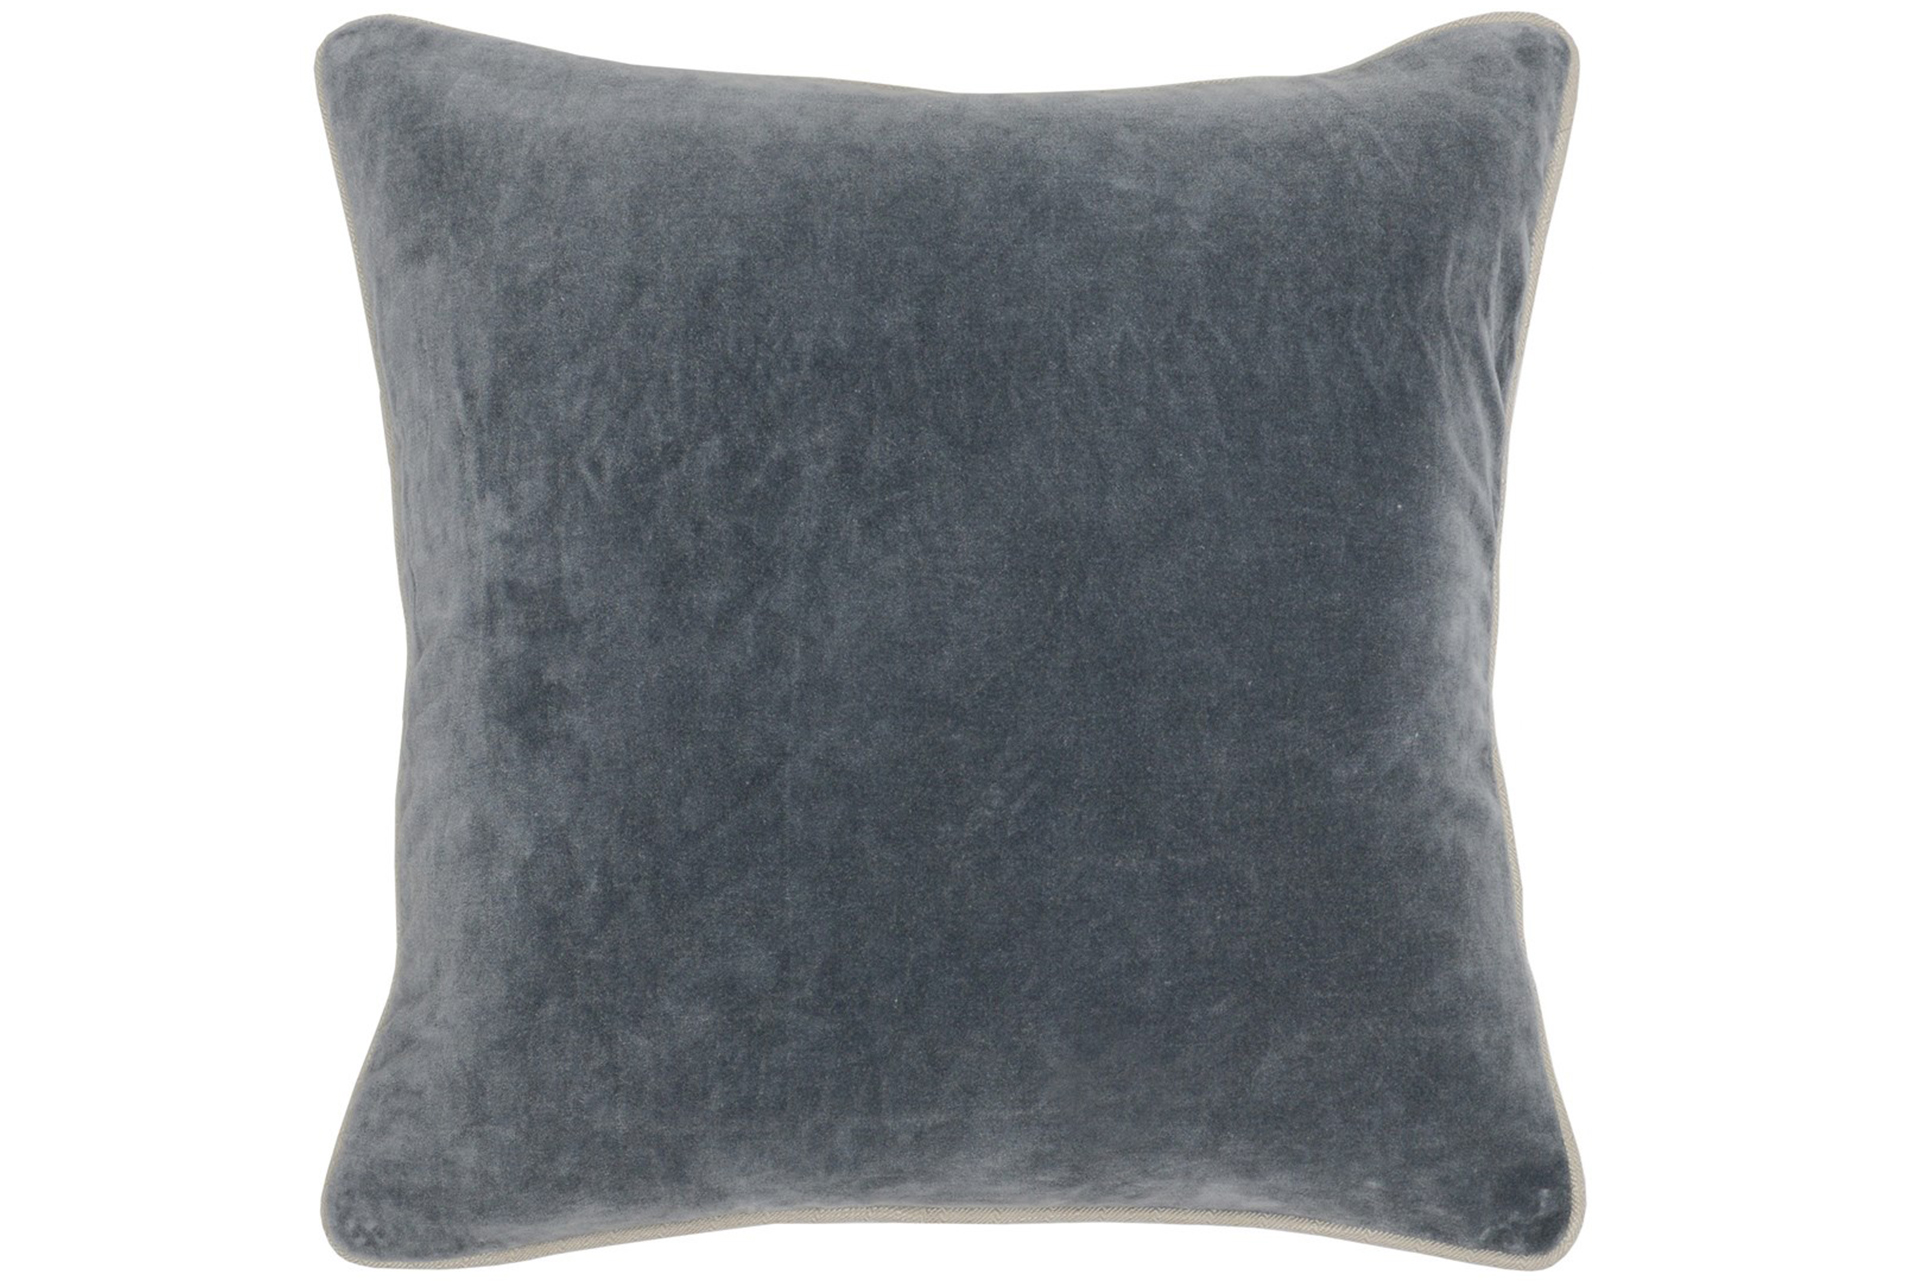 Accent Pillow-steel Grey Washed Velvet 18x18 Living Spaces